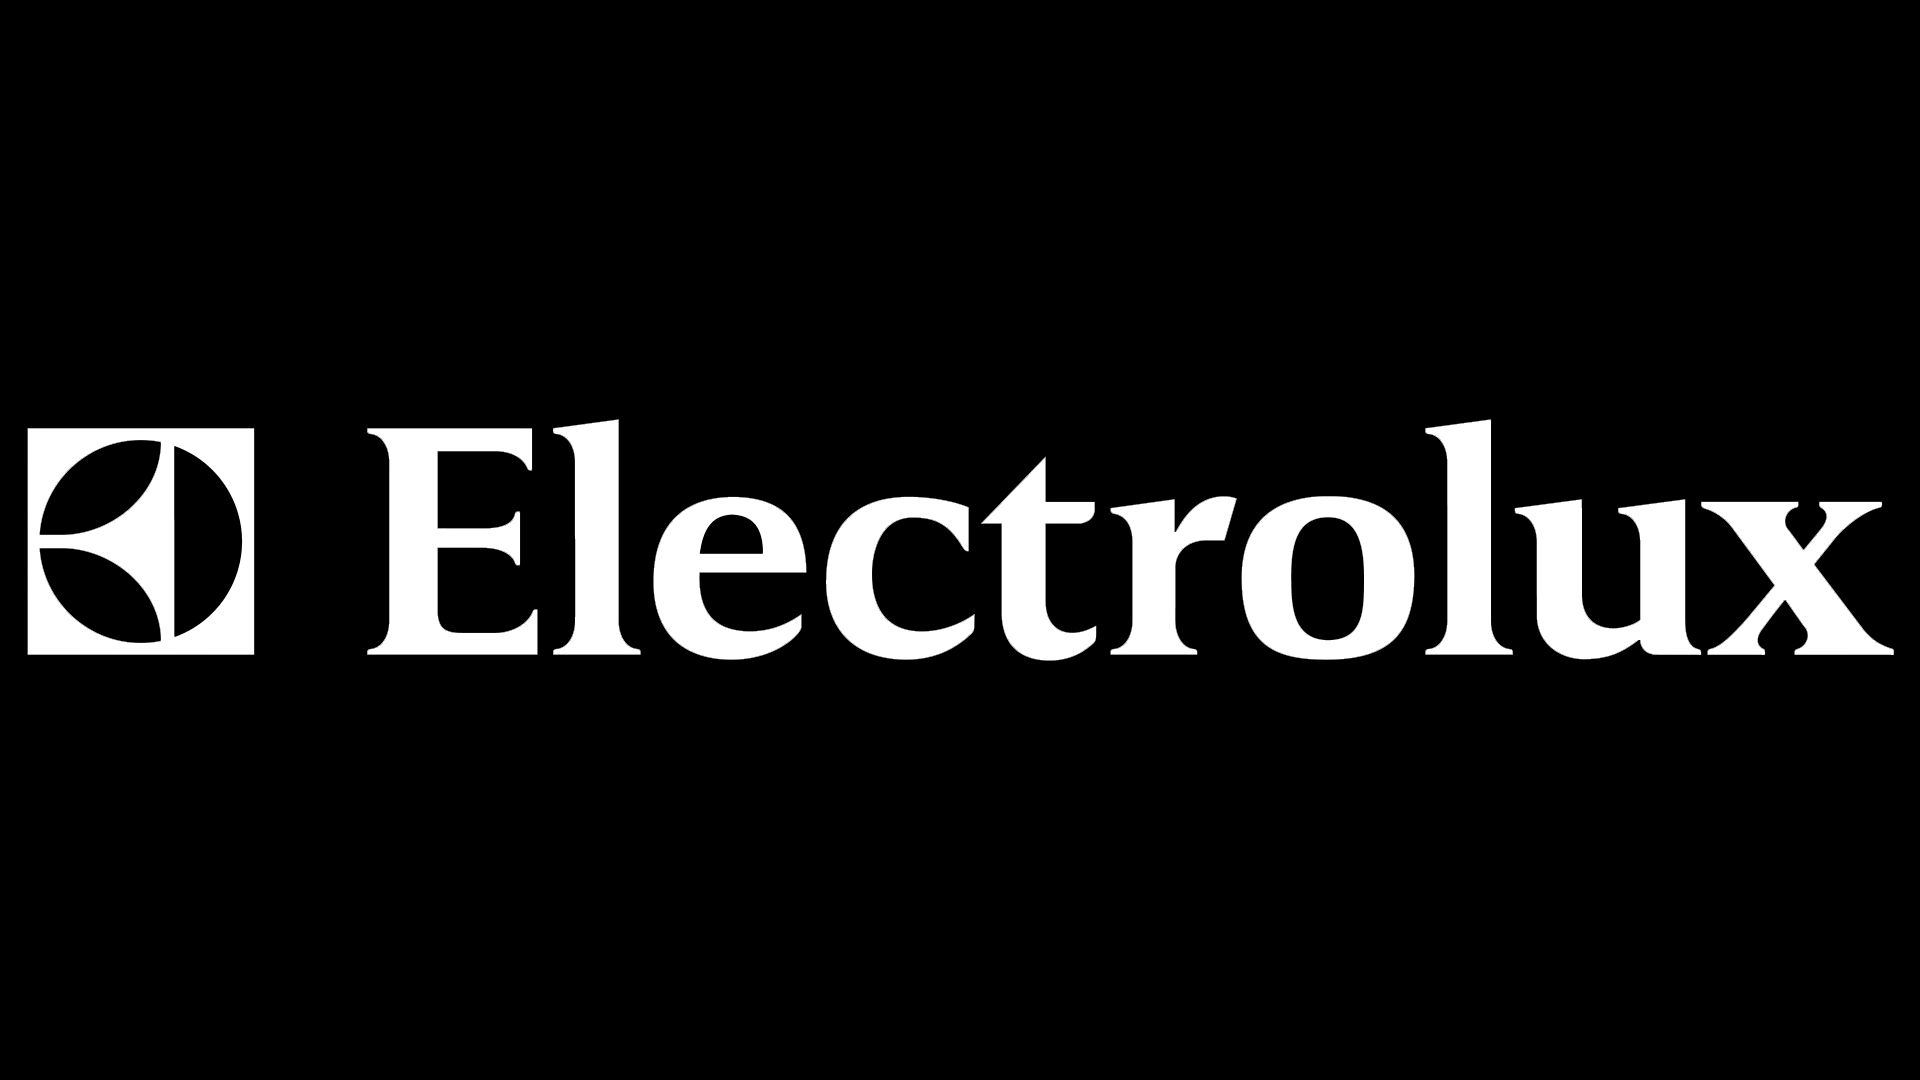 Electrolux Logo - Electrolux Logo, Electrolux Symbol, Meaning, History and Evolution